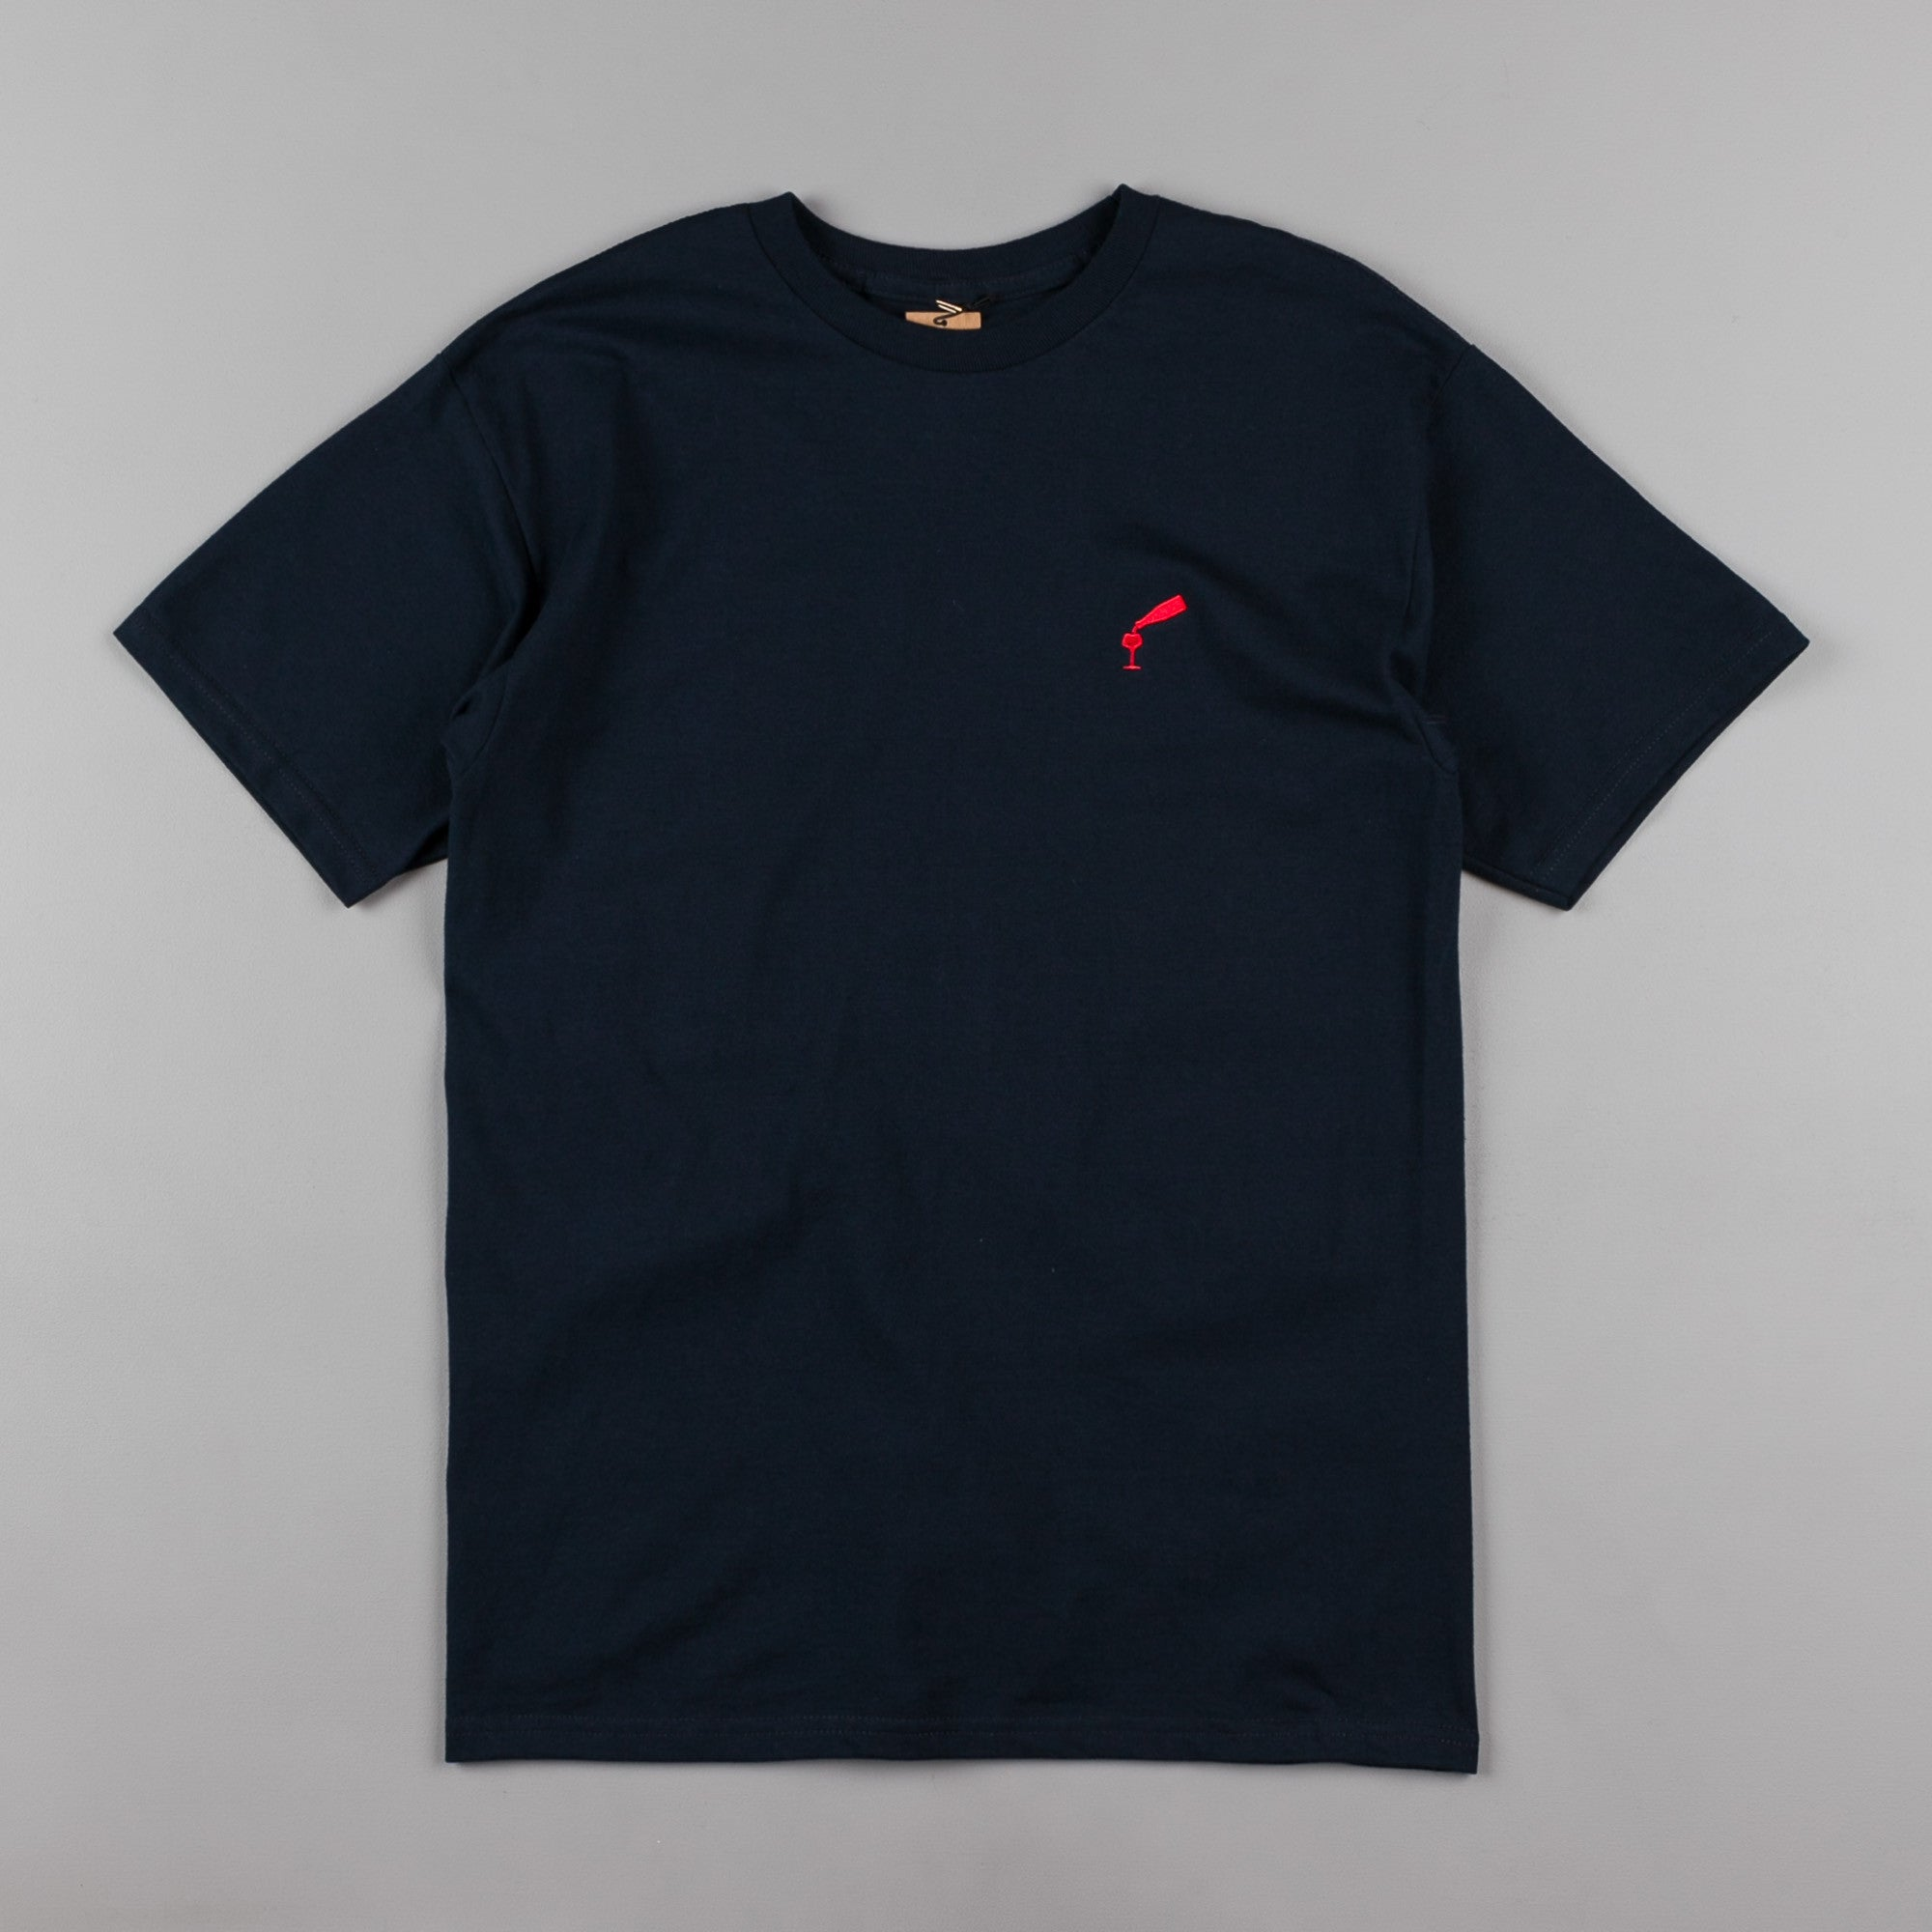 Pass Port Wine Time T-Shirt - Navy